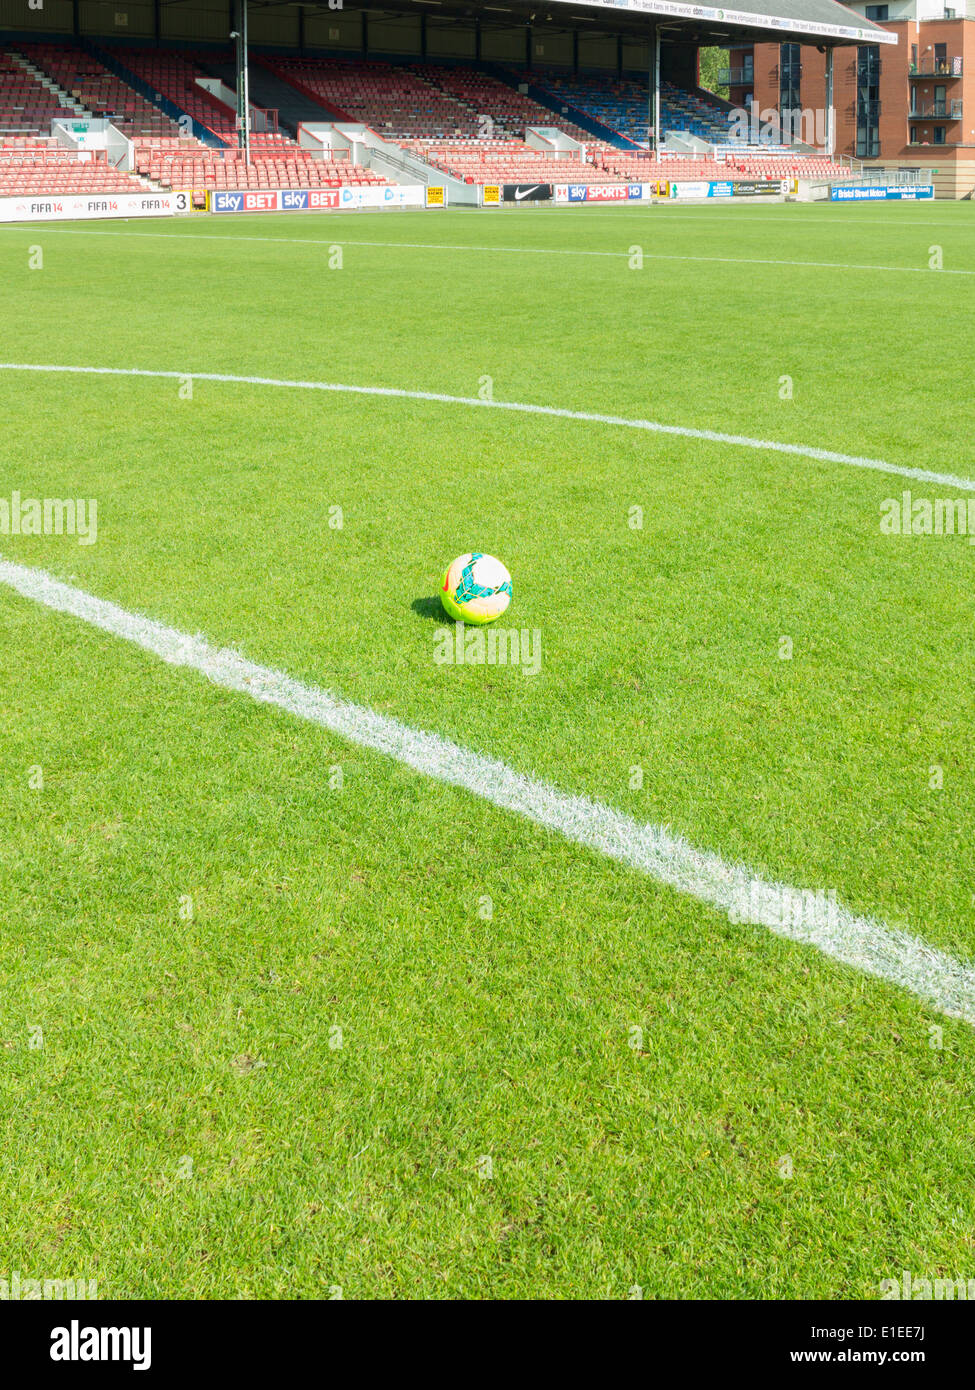 Football pitch with ball - Stock Image